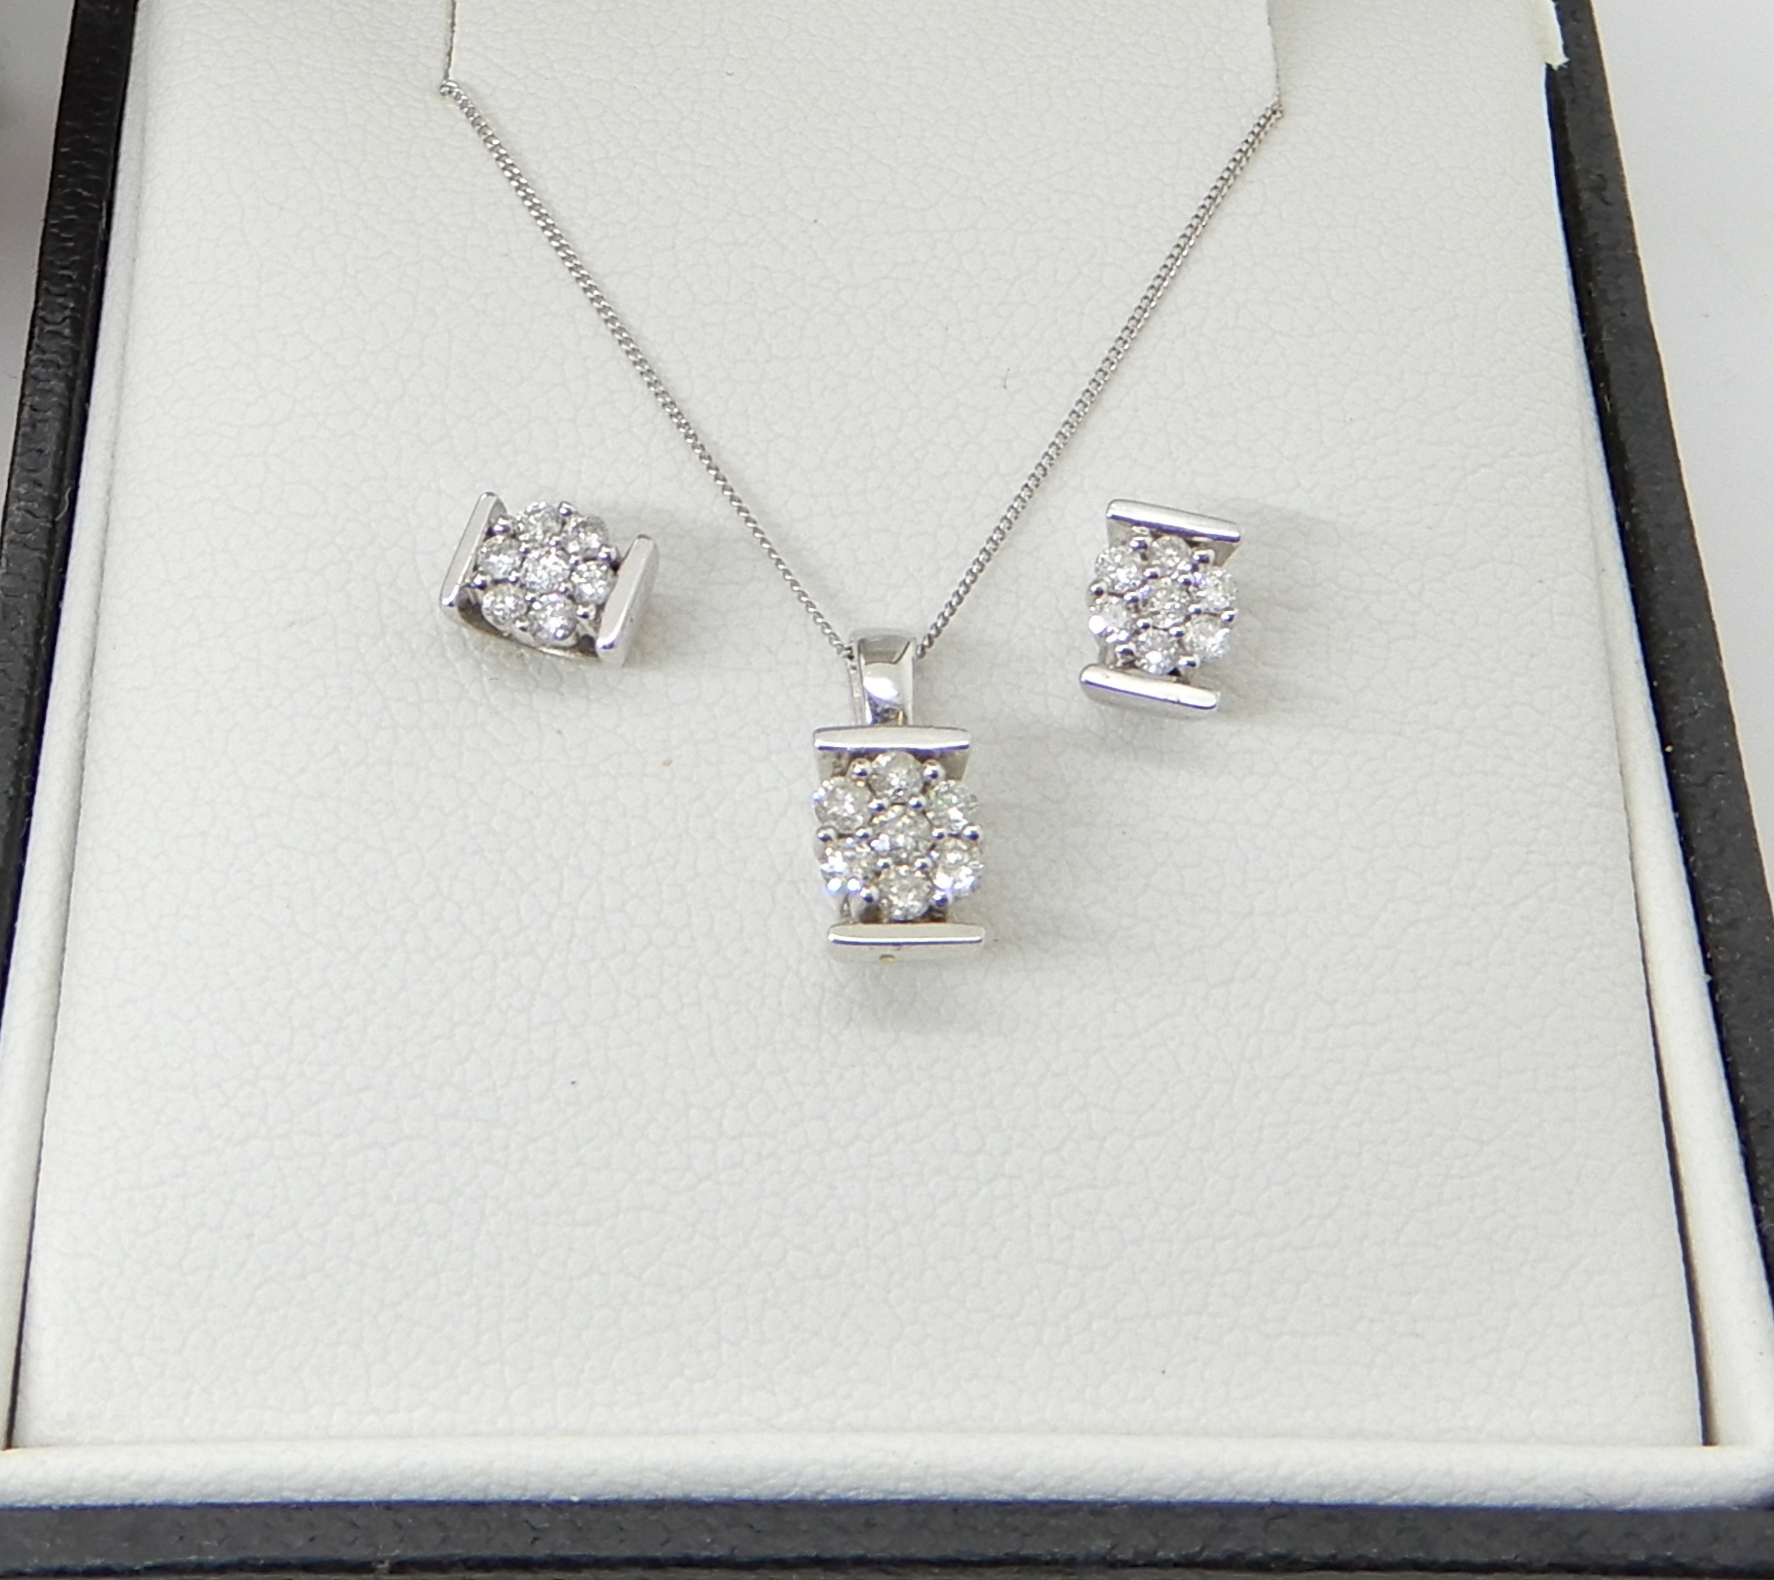 Lot 43 - A 9ct white gold flower pendant and chain and a pair of matching earrings, set with estimated approx